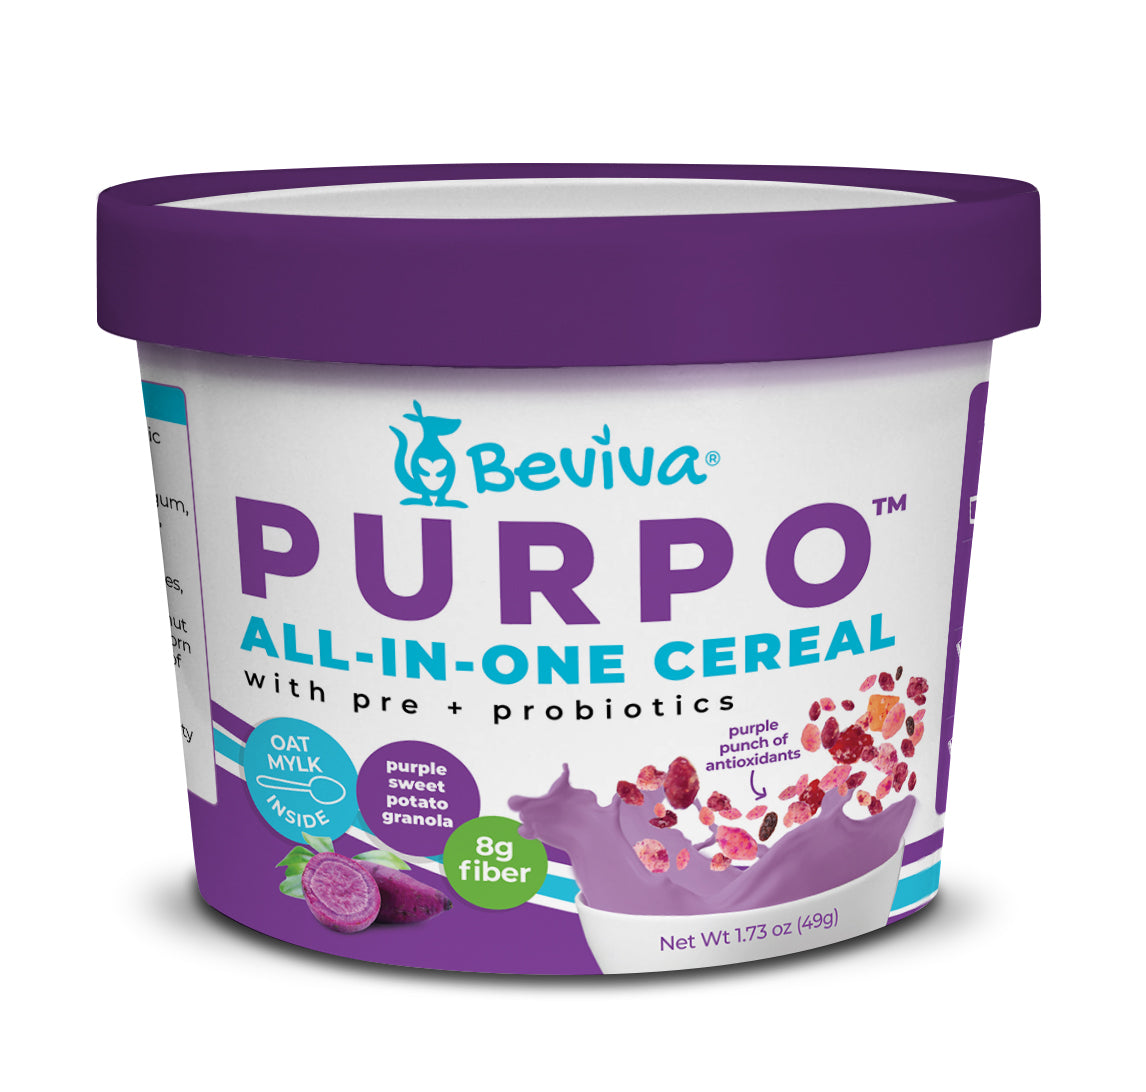 5 Great Reasons You'll Love The New PURPO